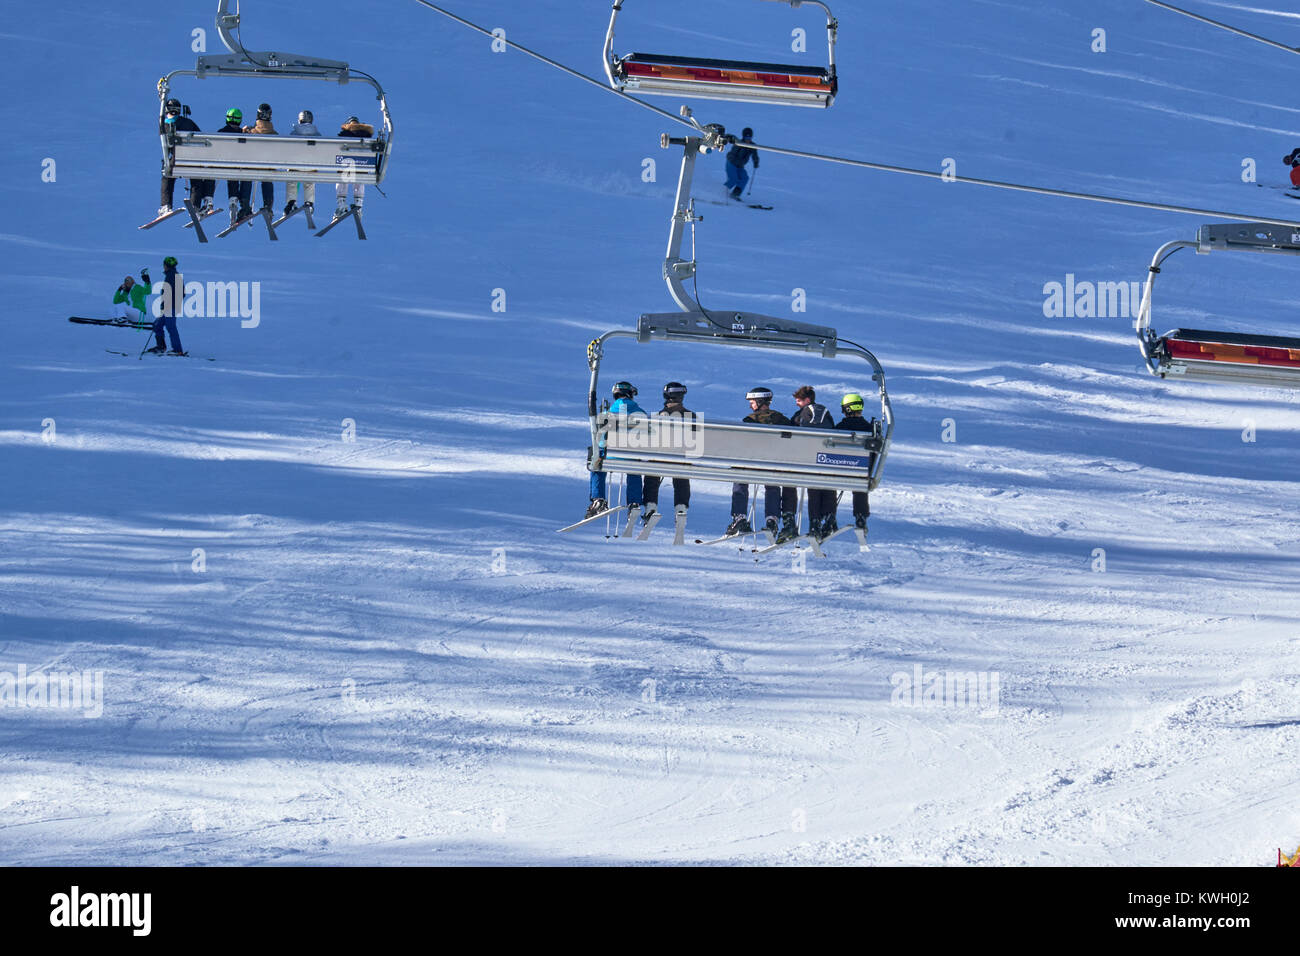 WINTERBERG, GERMANY - FEBRUARY 15, 2017: Going to the top in a relaxing chairlift at Ski Carousel Winterberg - Stock Image